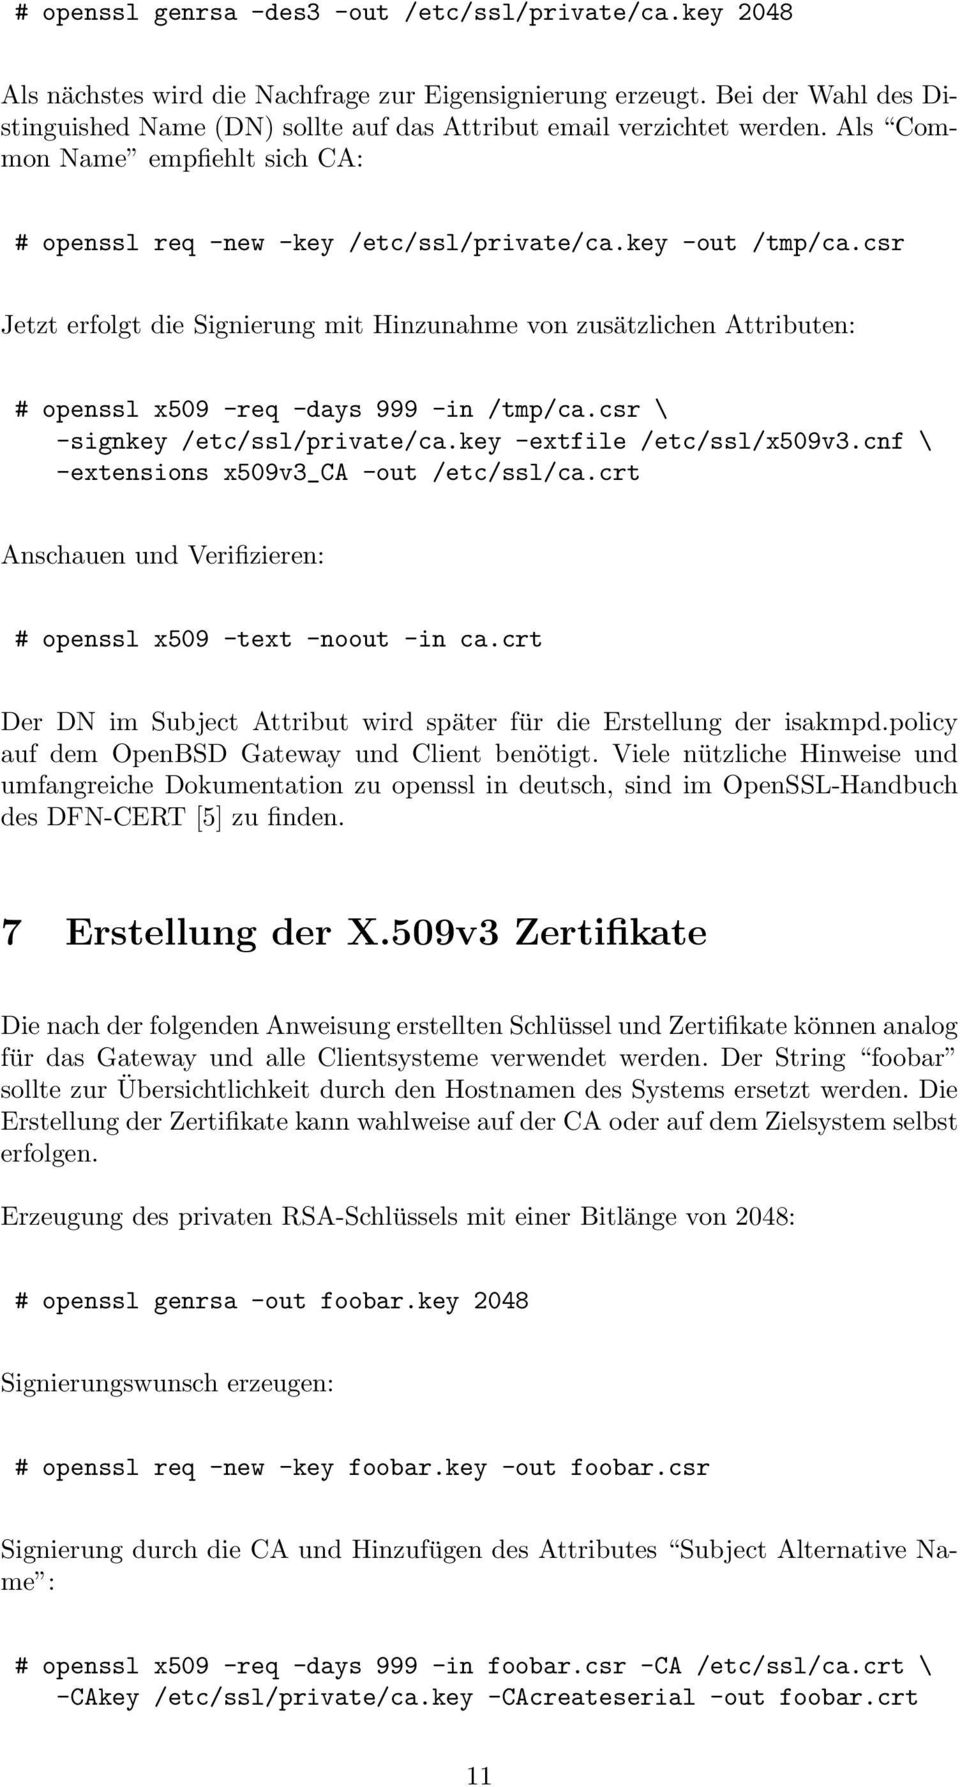 csr Jetzt erfolgt die Signierung mit Hinzunahme von zusätzlichen Attributen: # openssl x509 -req -days 999 -in /tmp/ca.csr \ -signkey /etc/ssl/private/ca.key -extfile /etc/ssl/x509v3.